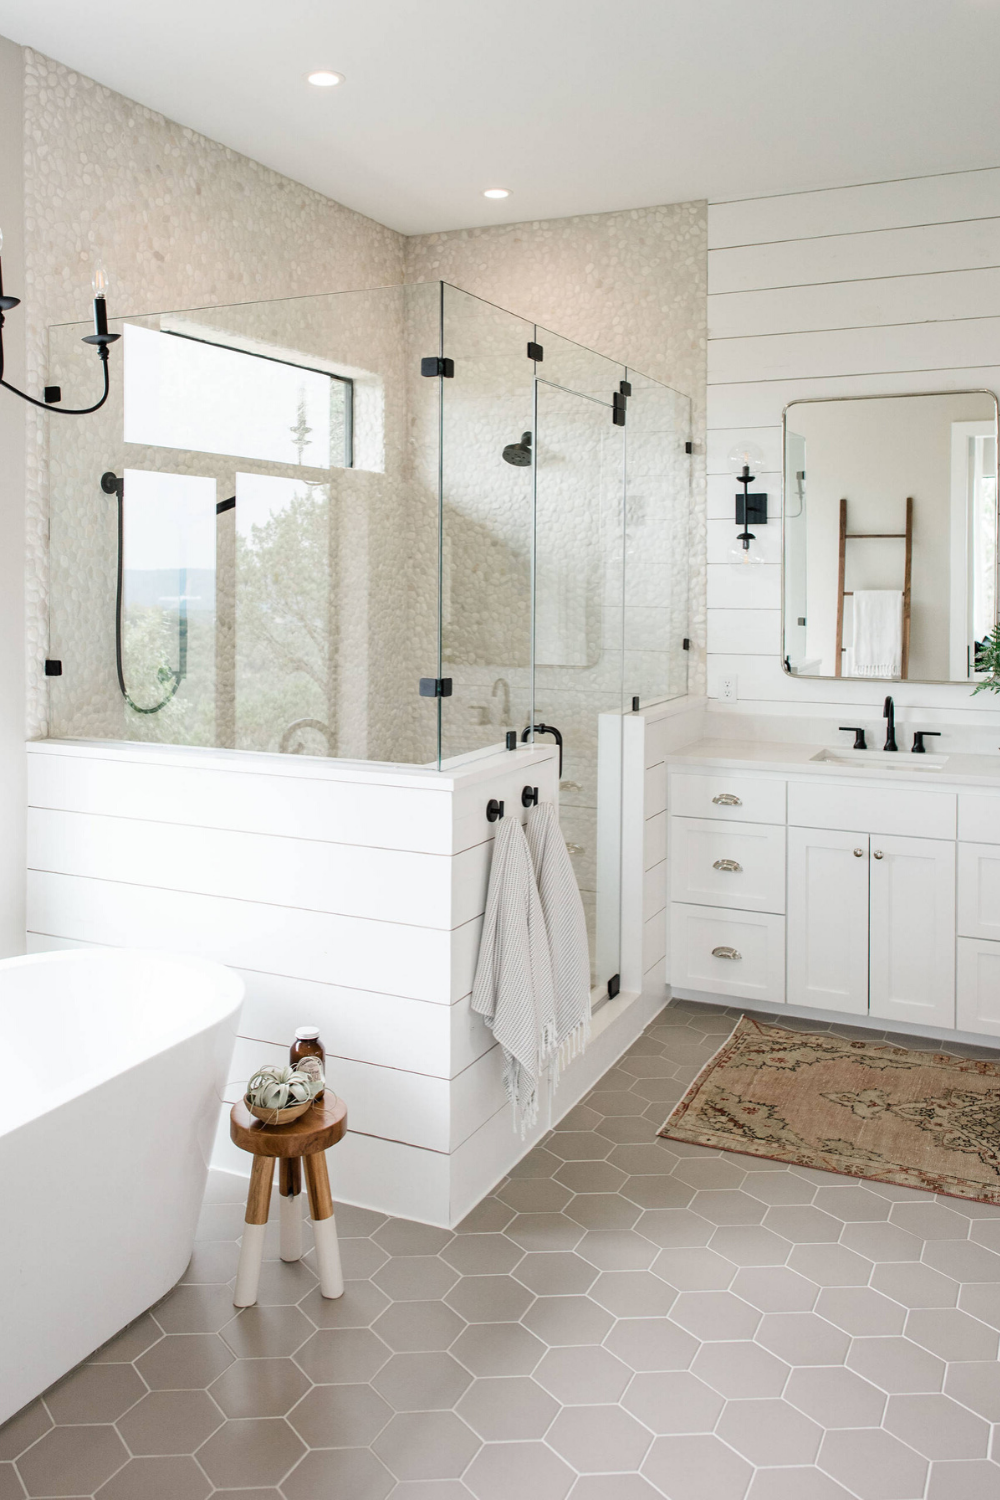 Secret Advice To Make An Outstanding Home Bathroom Remodel #bathroom #bathroomideas #bathroomdecor #bathroomdesign #bathroomstorage